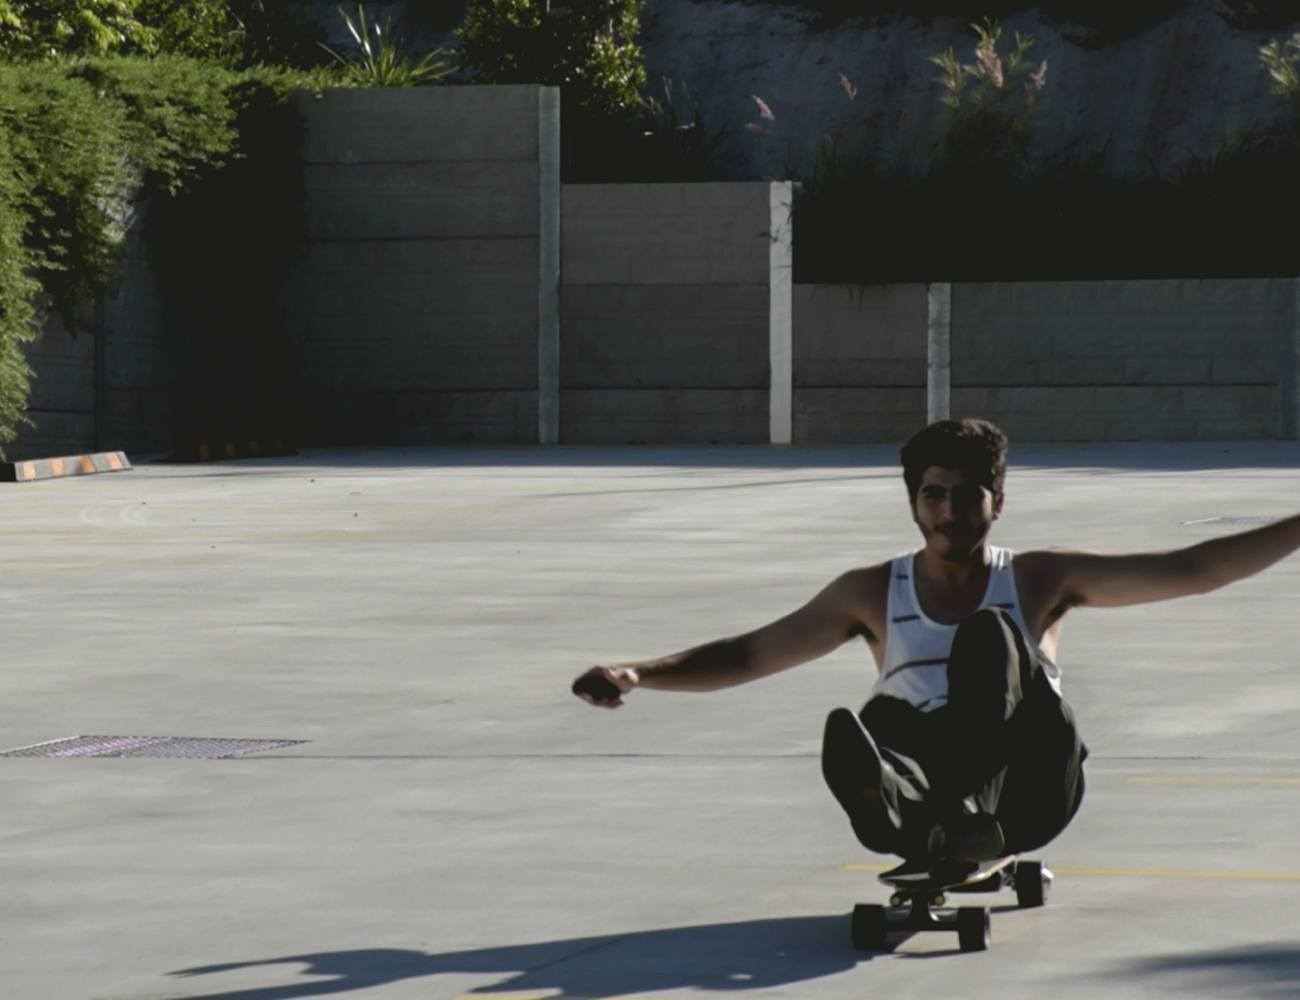 The IvoryBoard Electric Skateboard Gets Top Marks for Performance